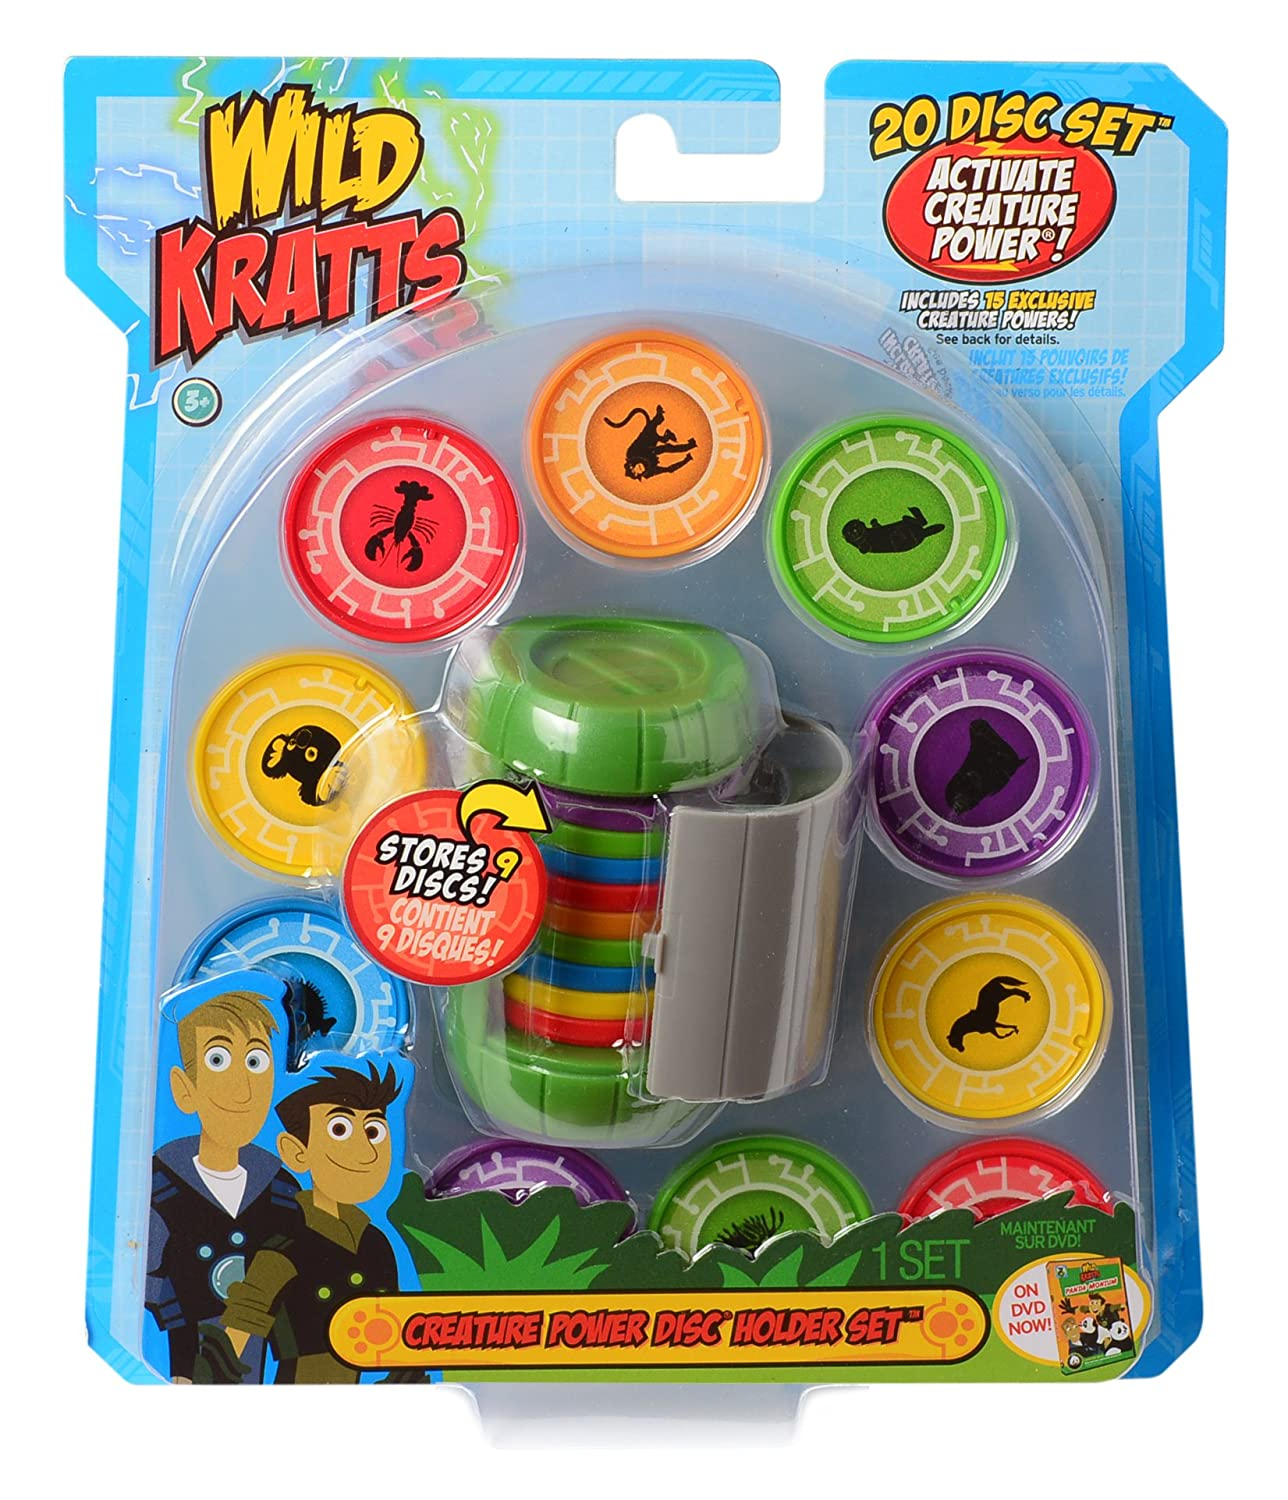 image relating to Wild Kratts Creature Power Discs Printable named Wild Kratts Toys Creature Electricity Disc Holder Preset with 20 Discs - Chris Kratt